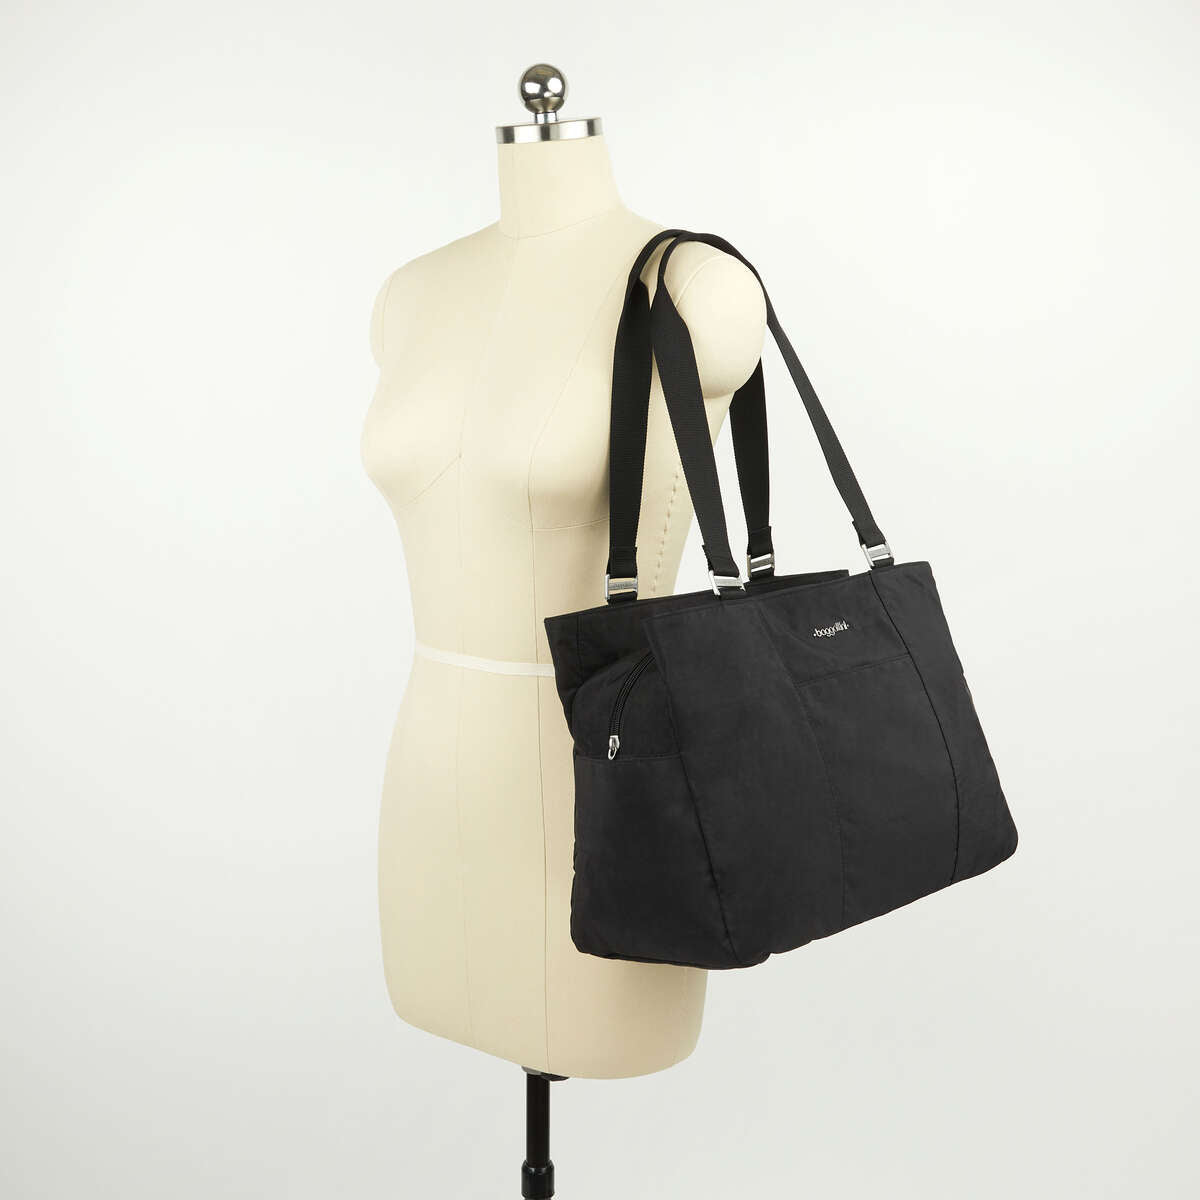 Baggallini East West Tote - Black